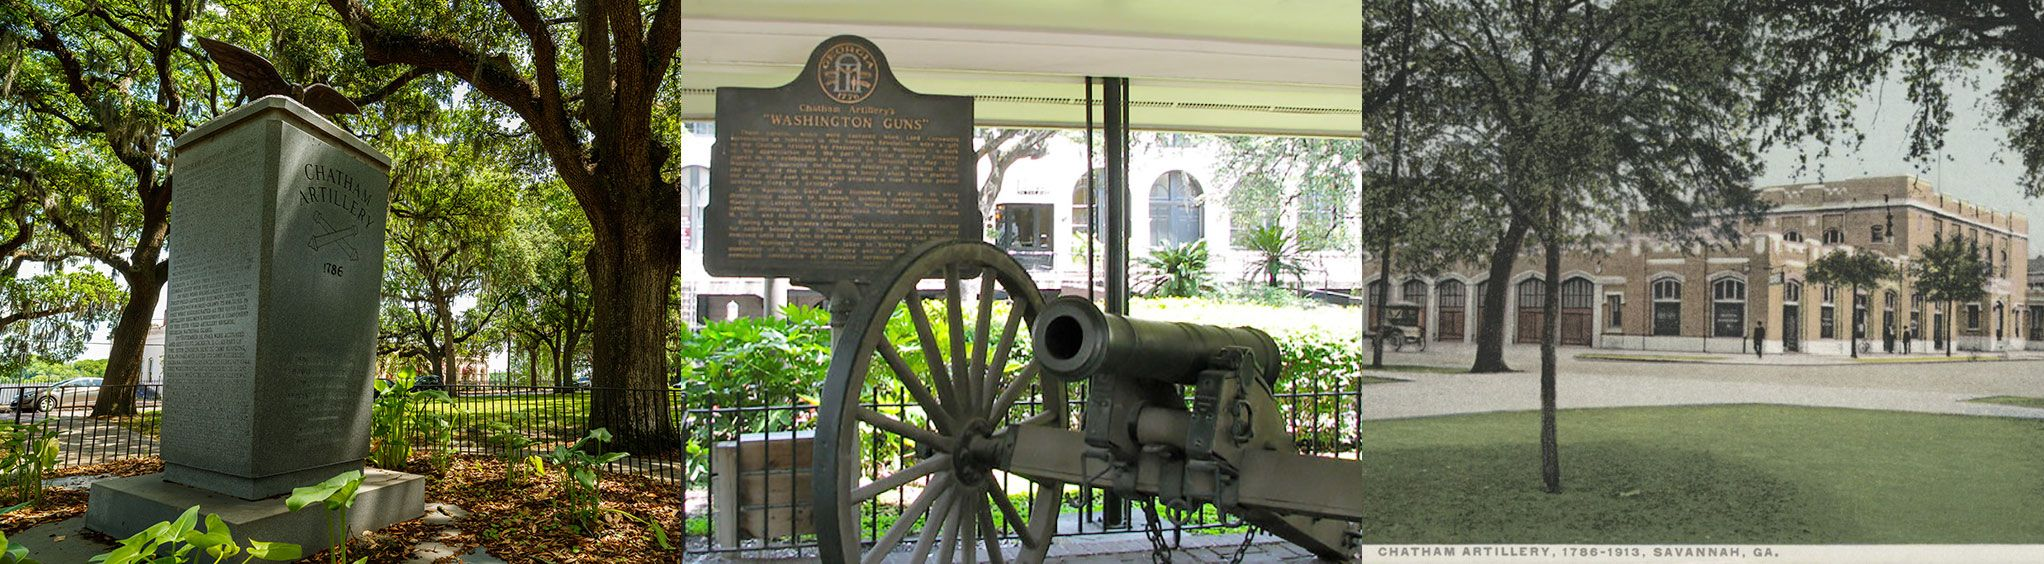 Chatham Artillery's Washington Guns